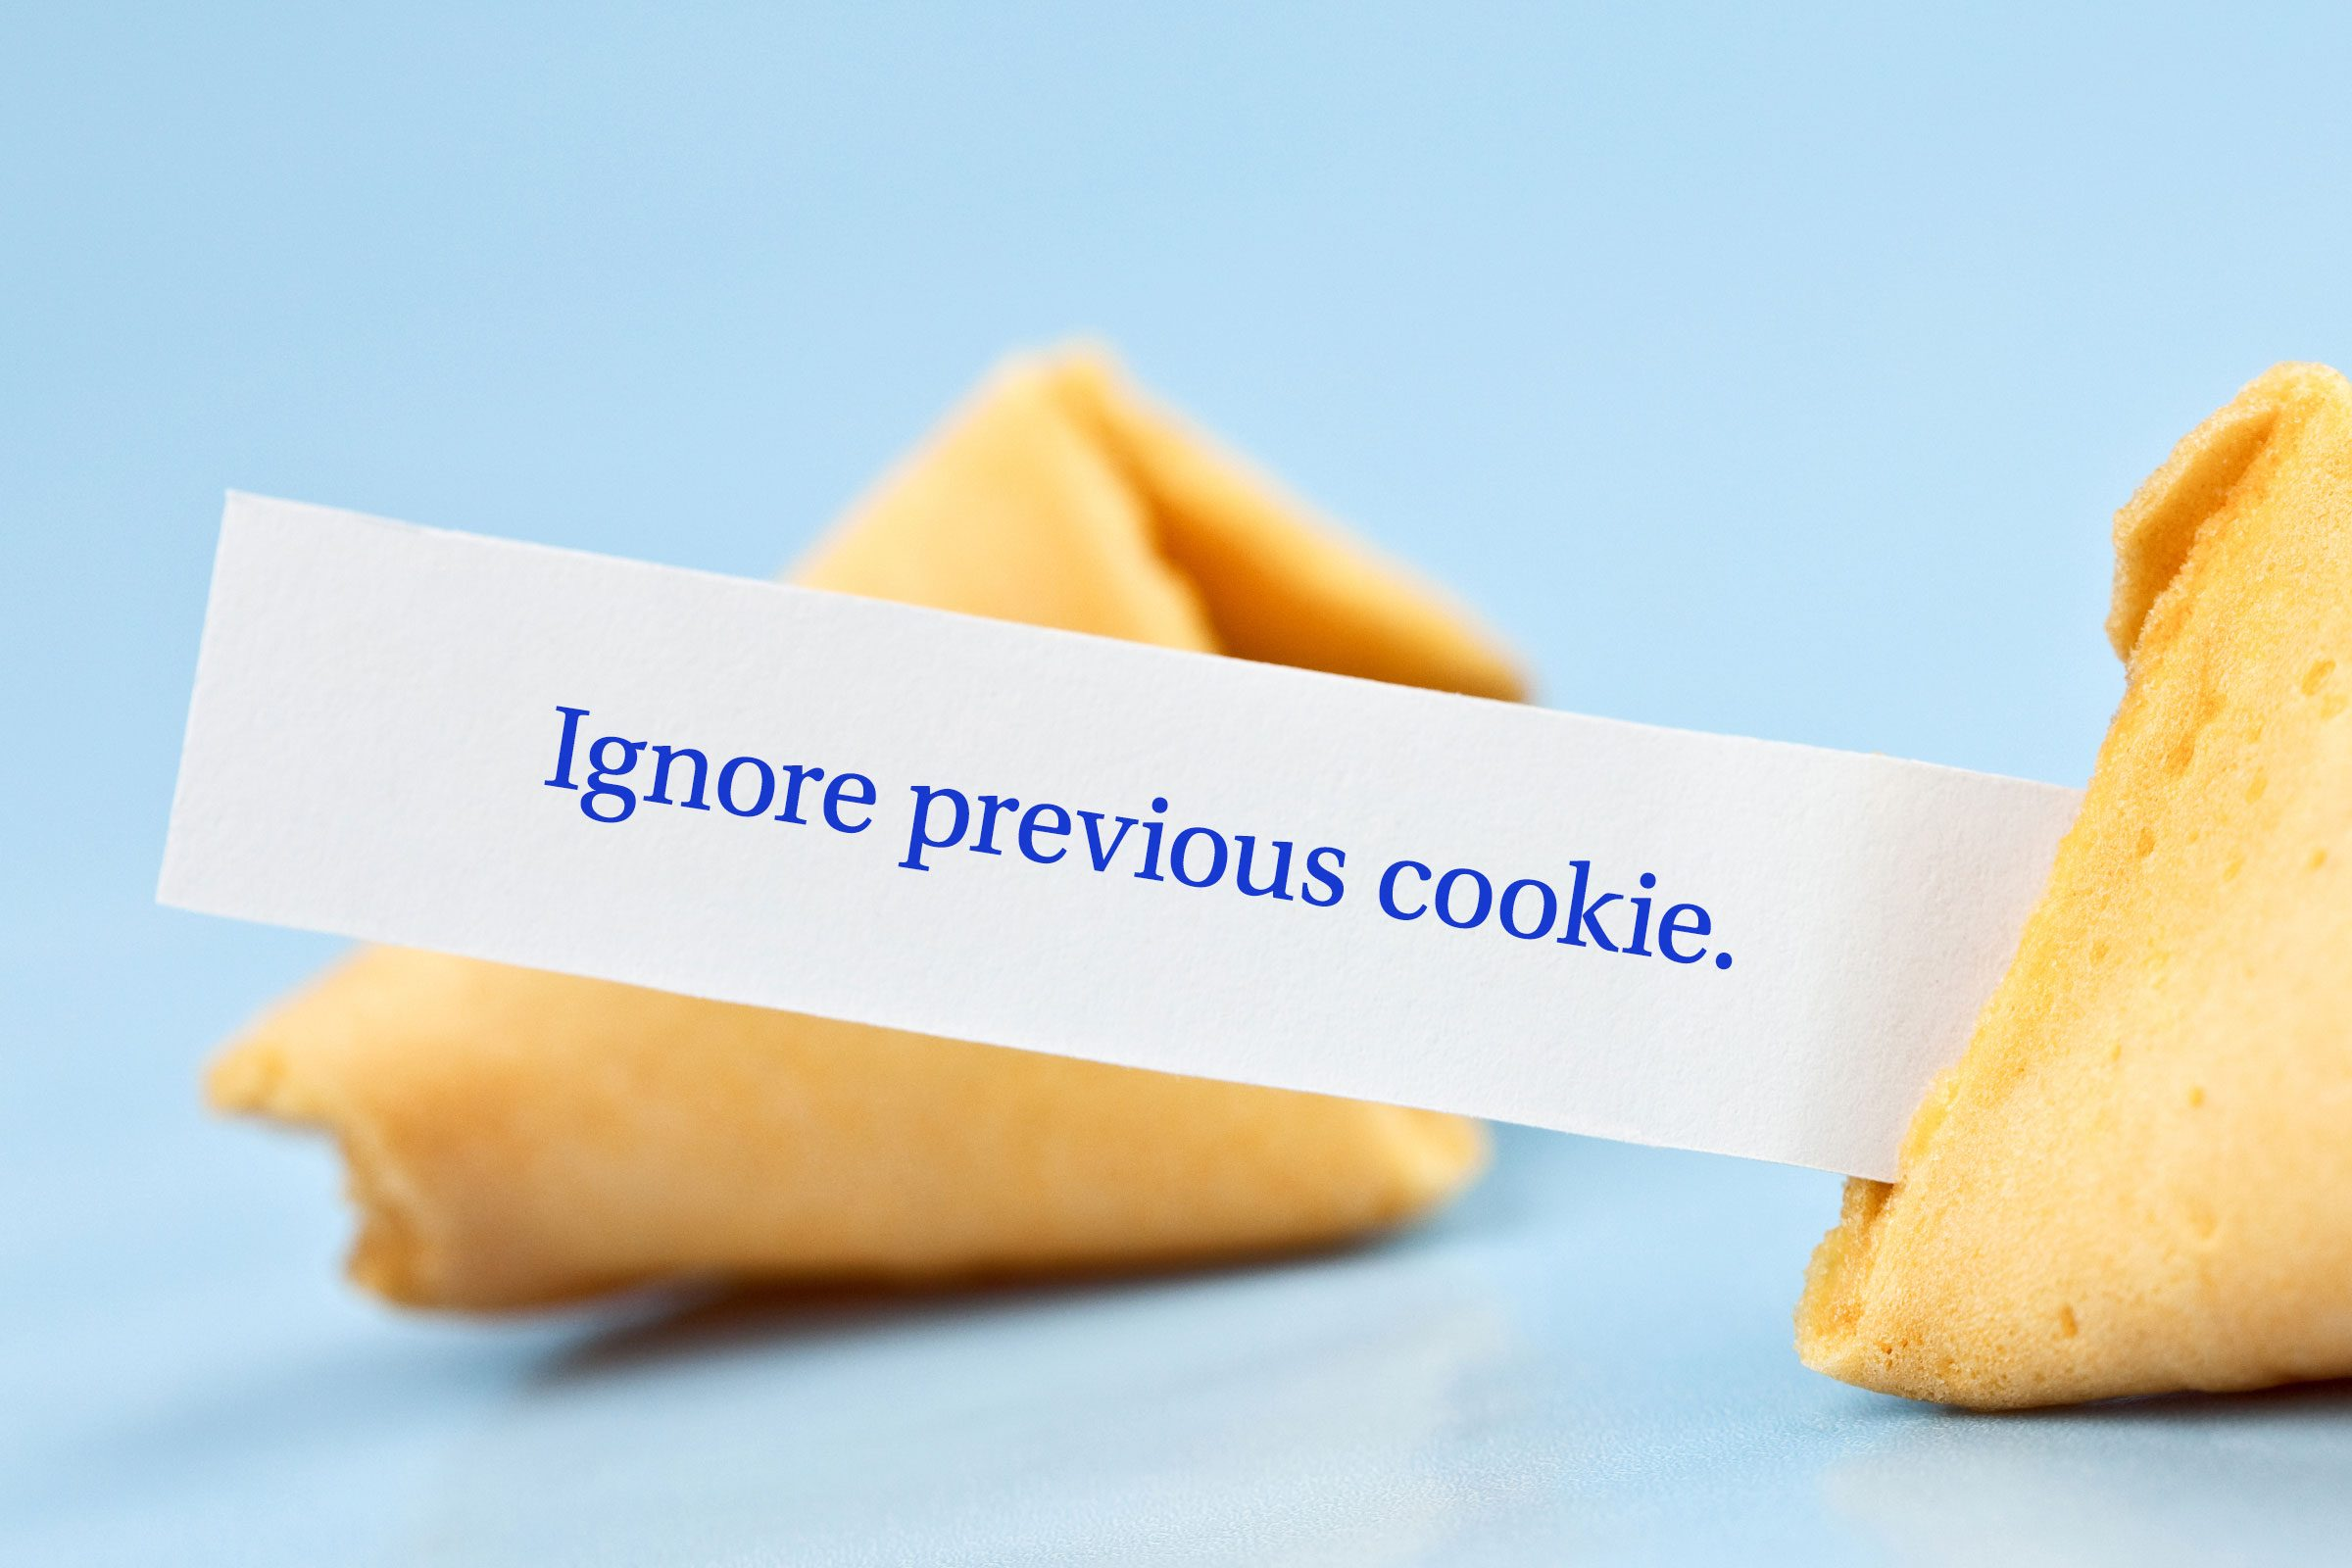 For image: Ignore previous cookie.